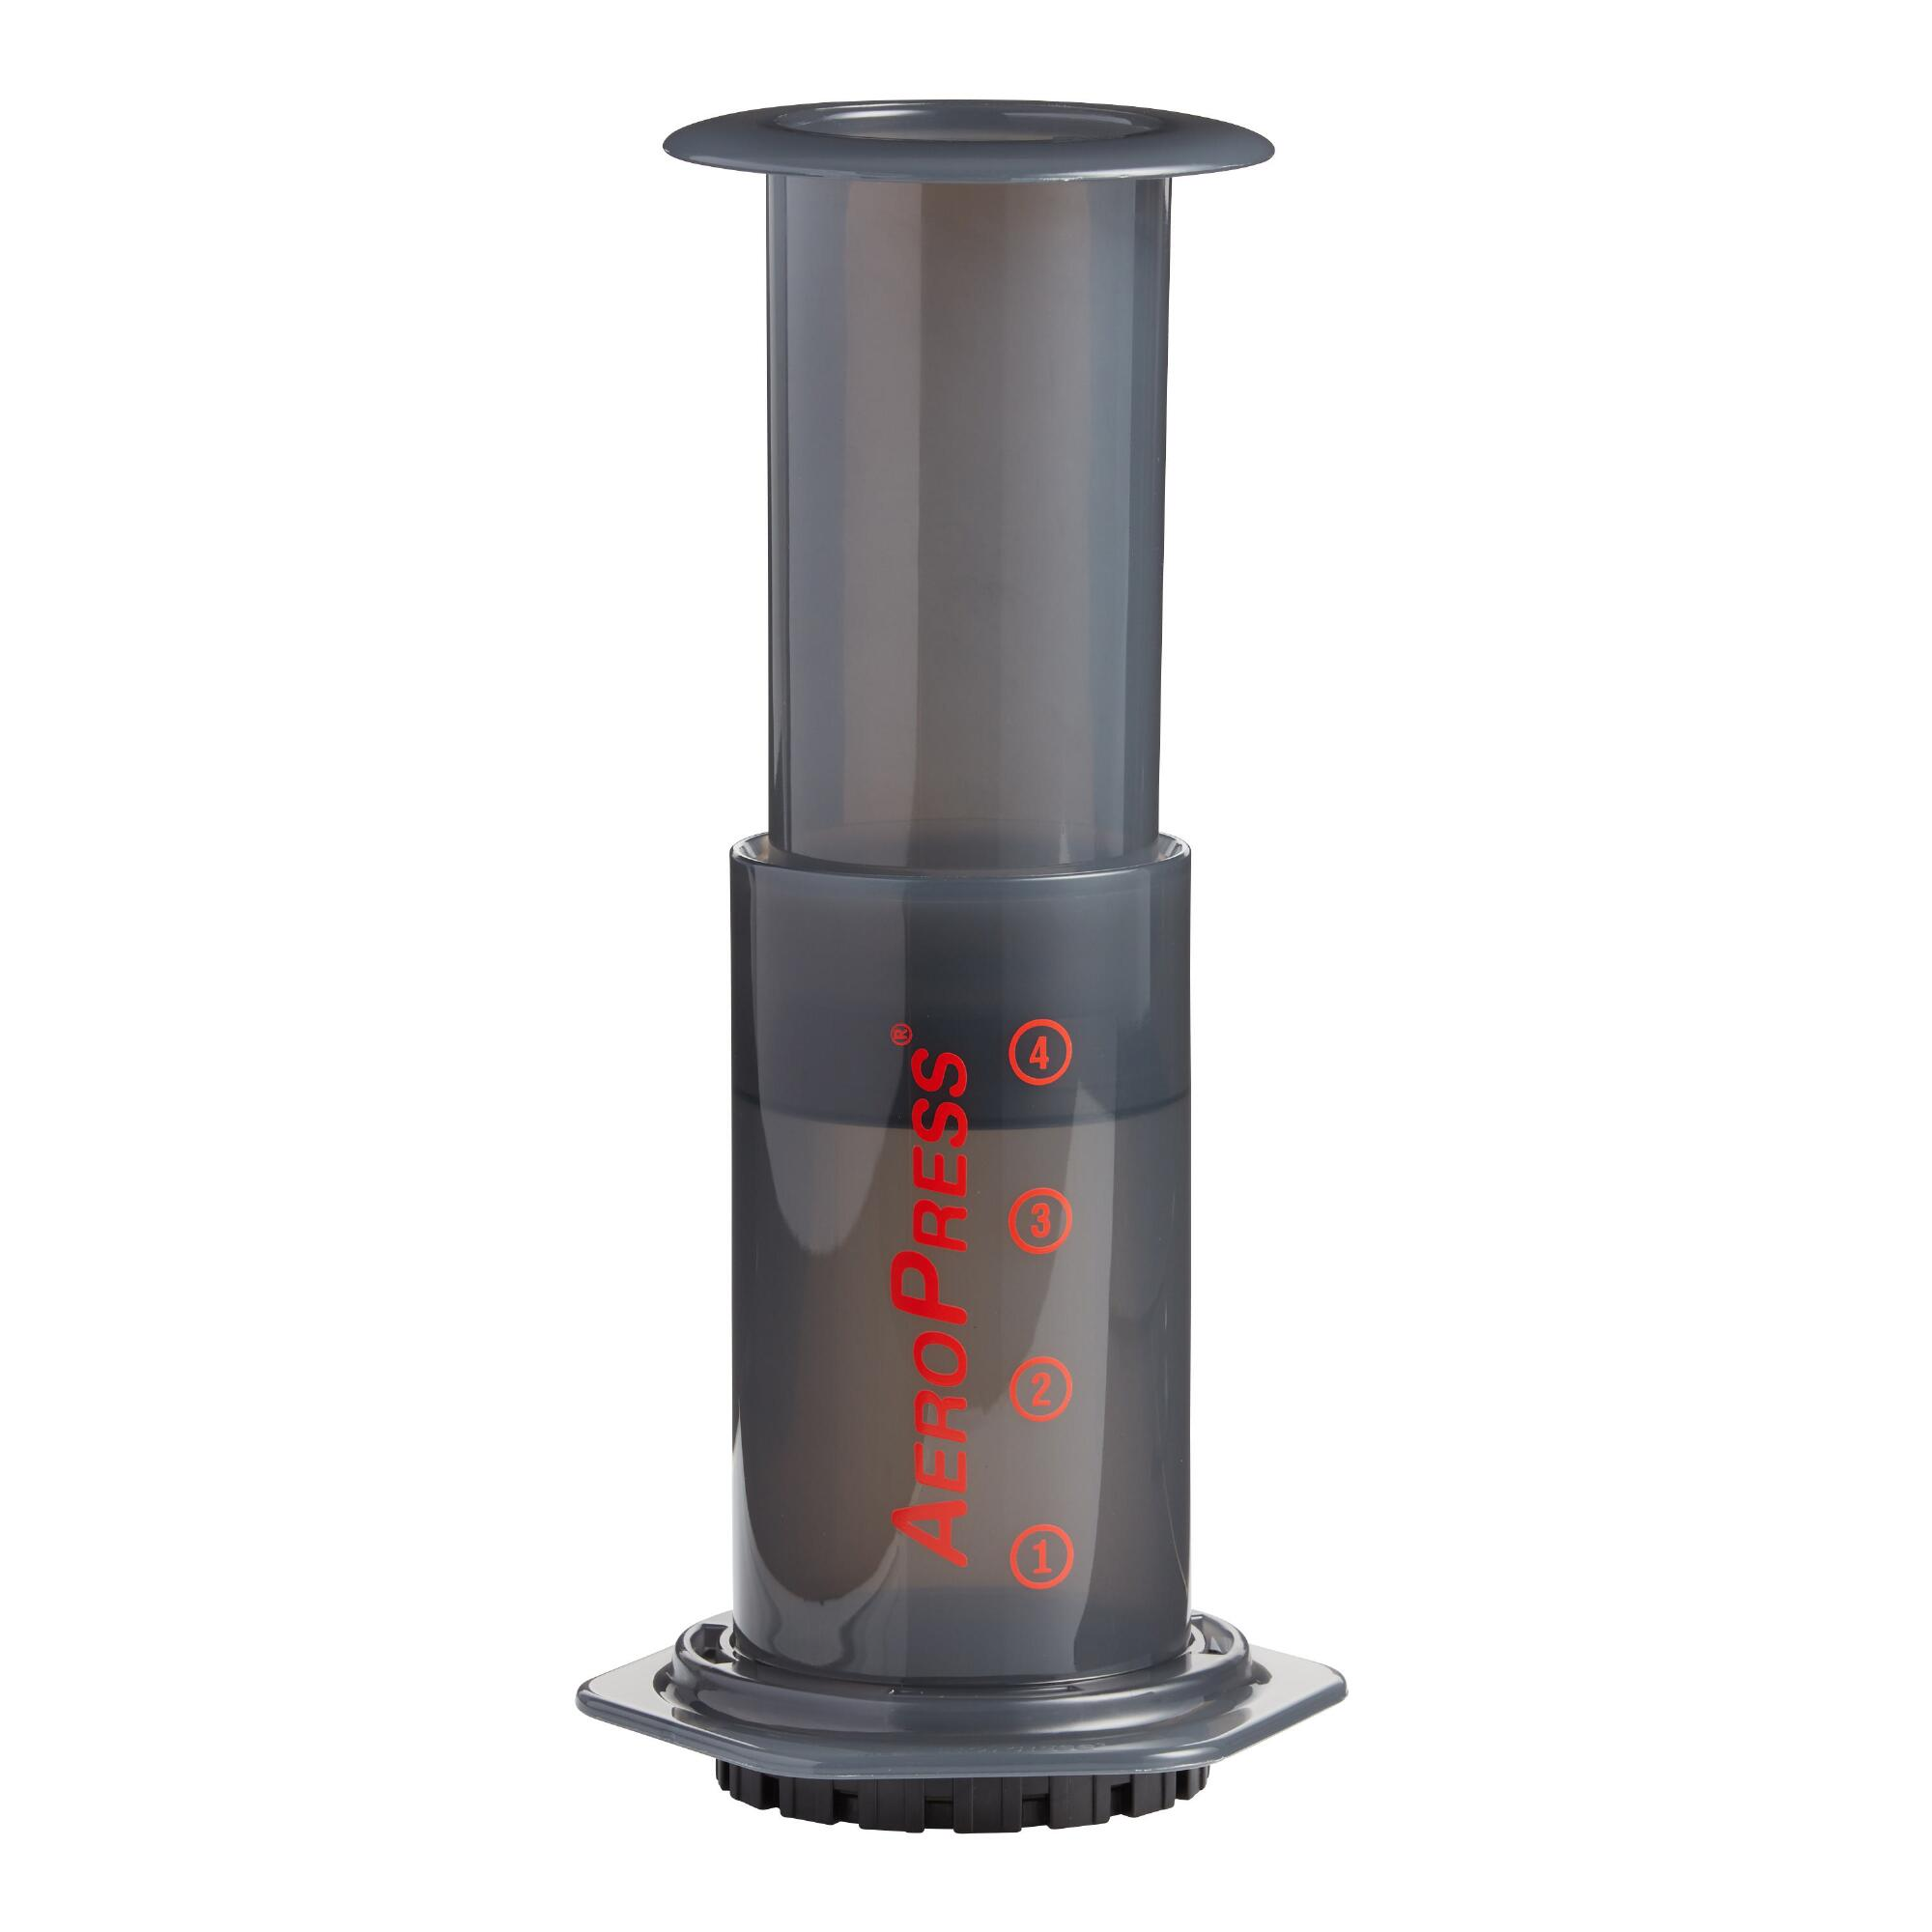 Aeropress Coffee Maker Retailers : AeroPress Coffee and Espresso Maker World Market